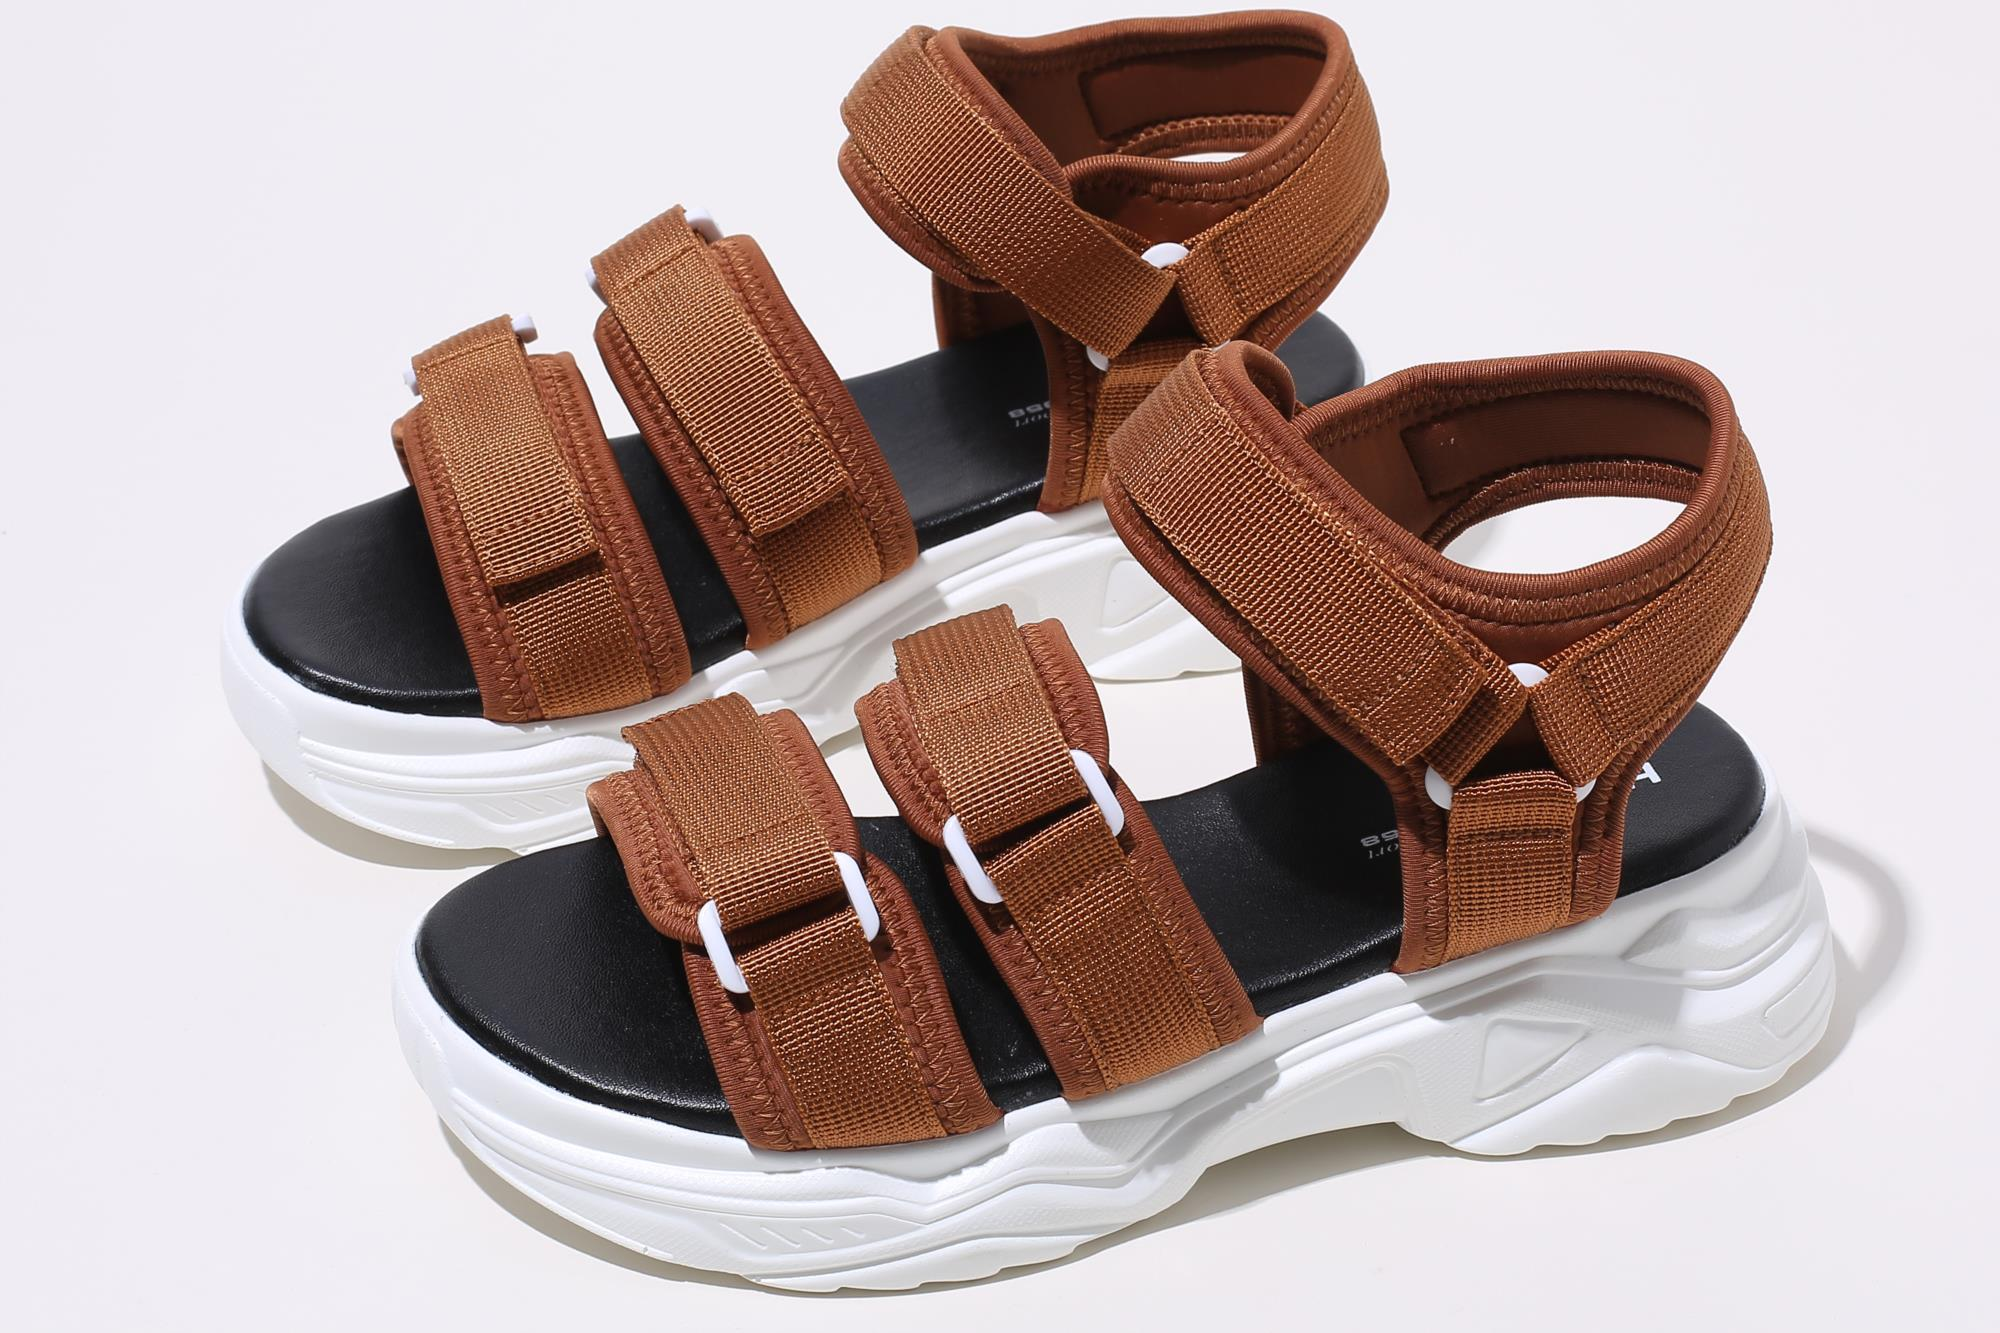 Hot Selling Good Quality New Design Latest Summer Sandals Shoes